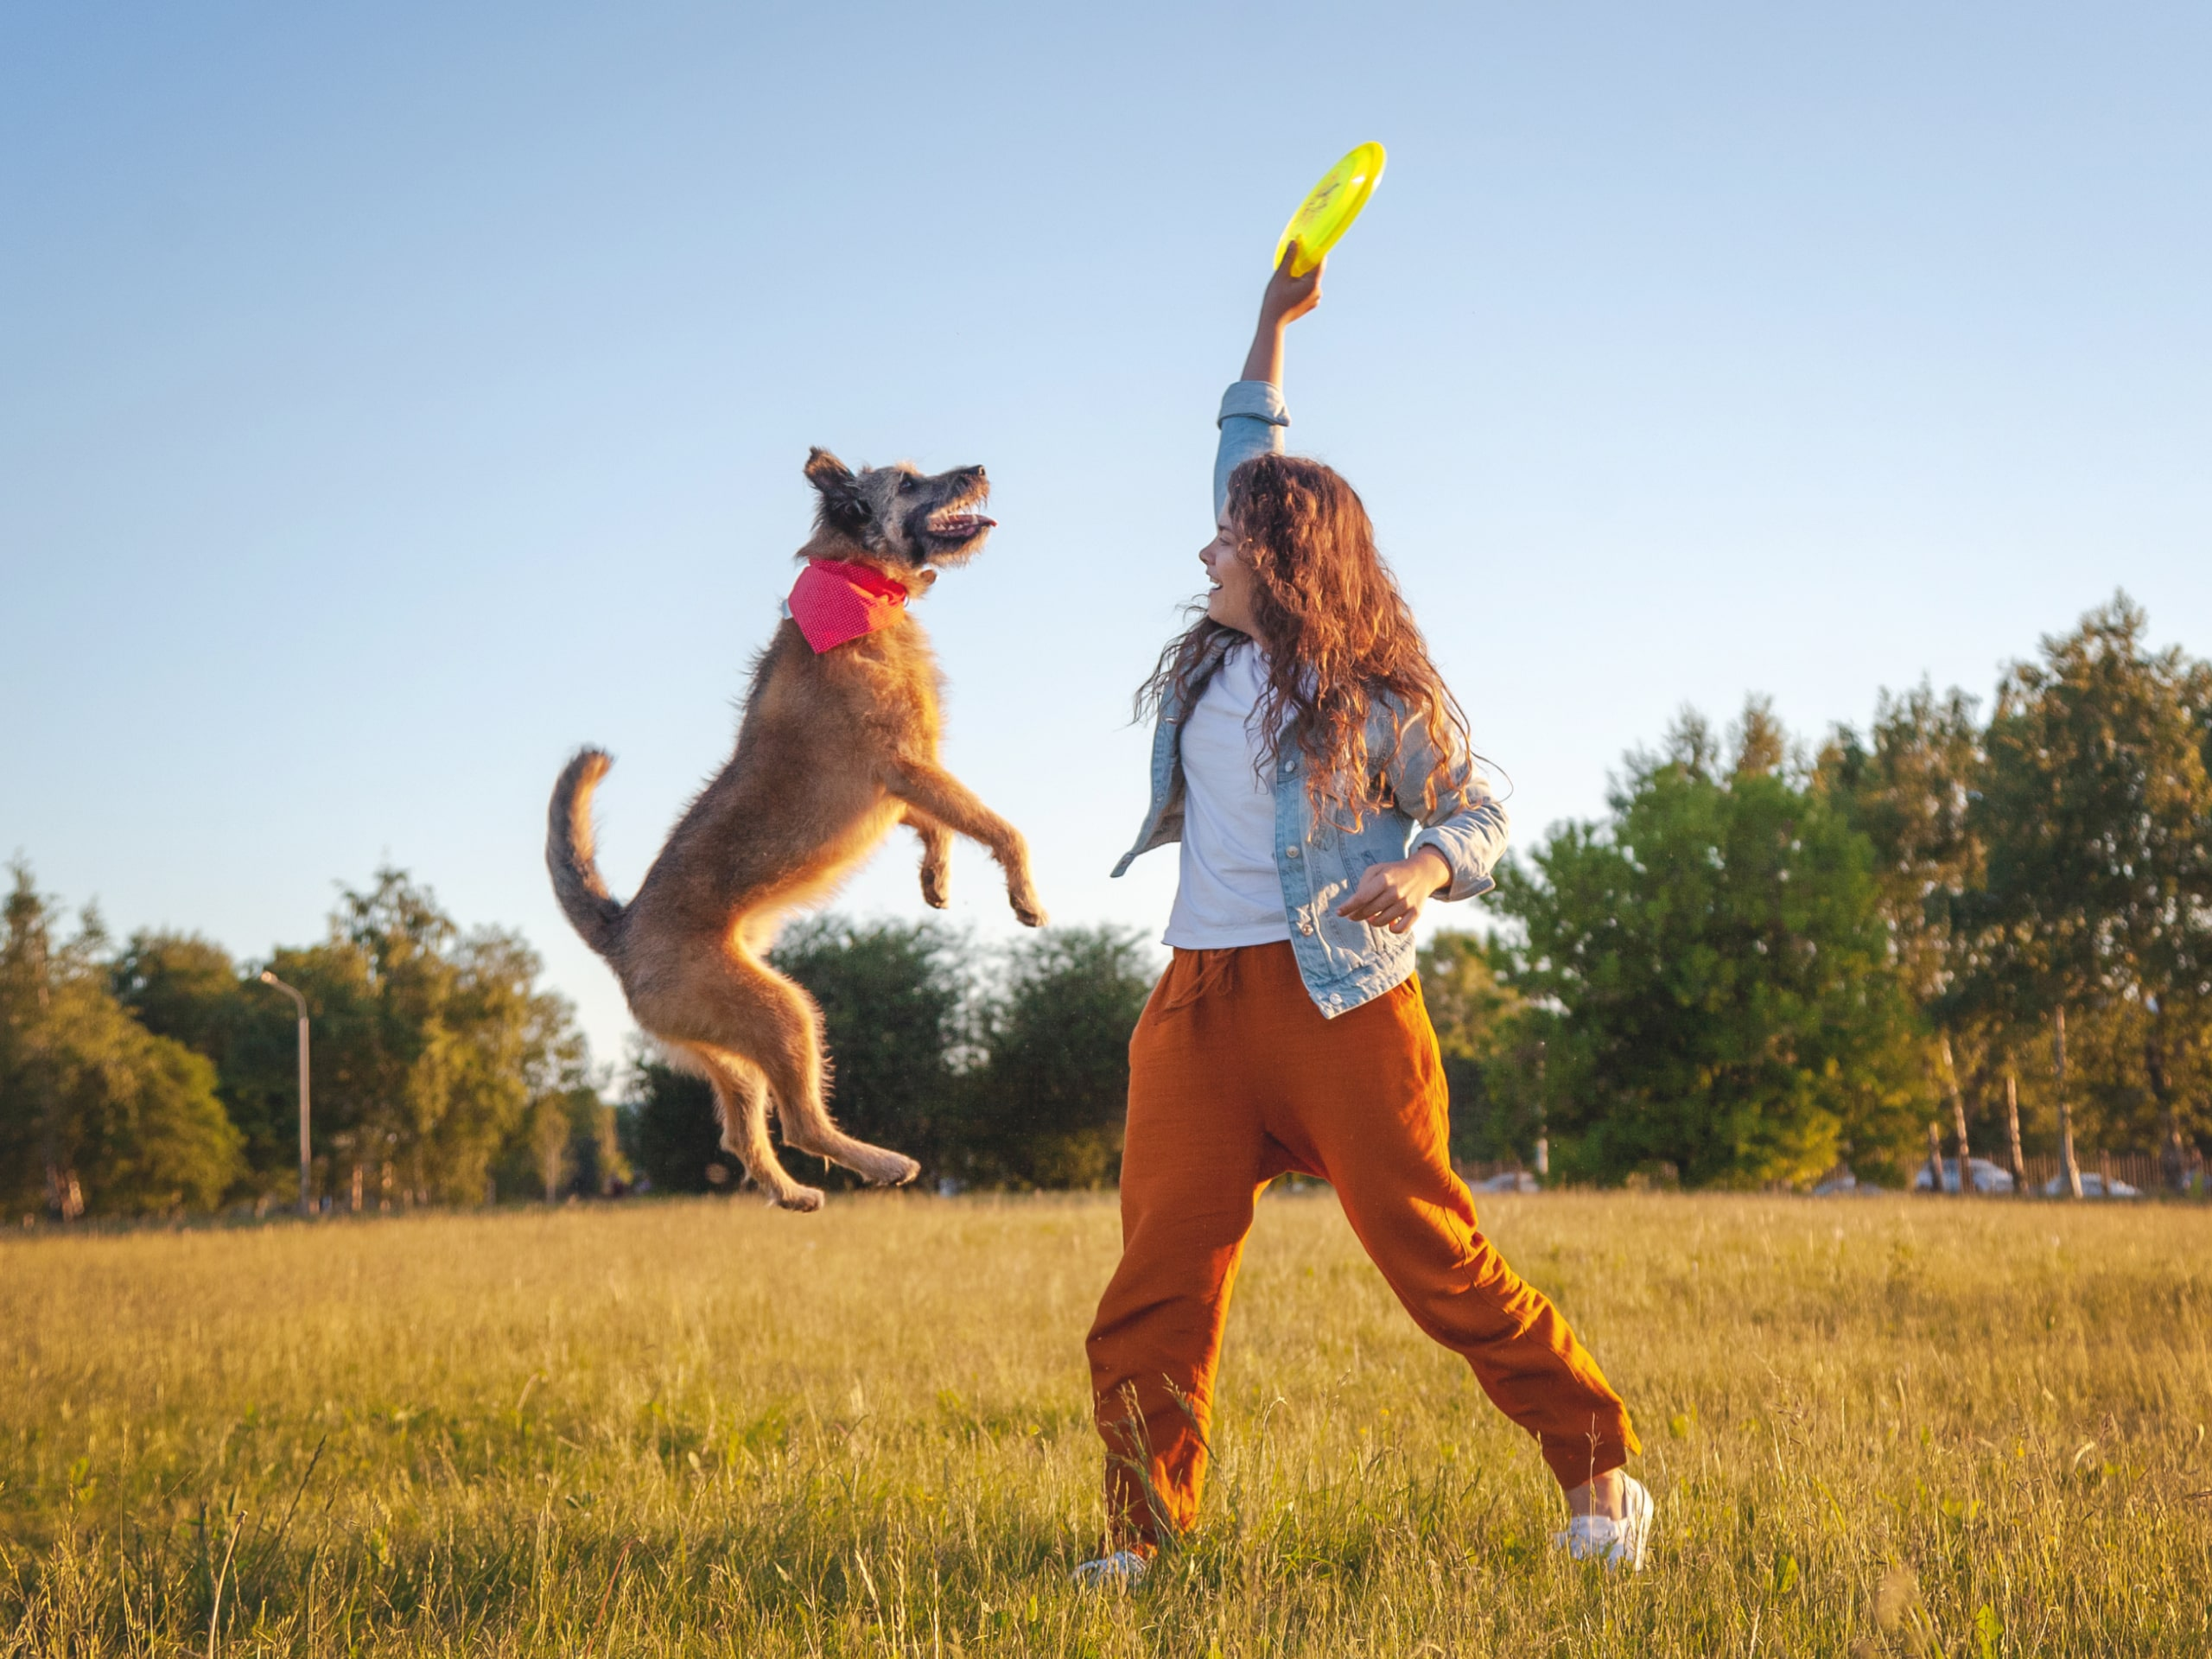 Dog jumping a frisbee that their owner is holding up in the air